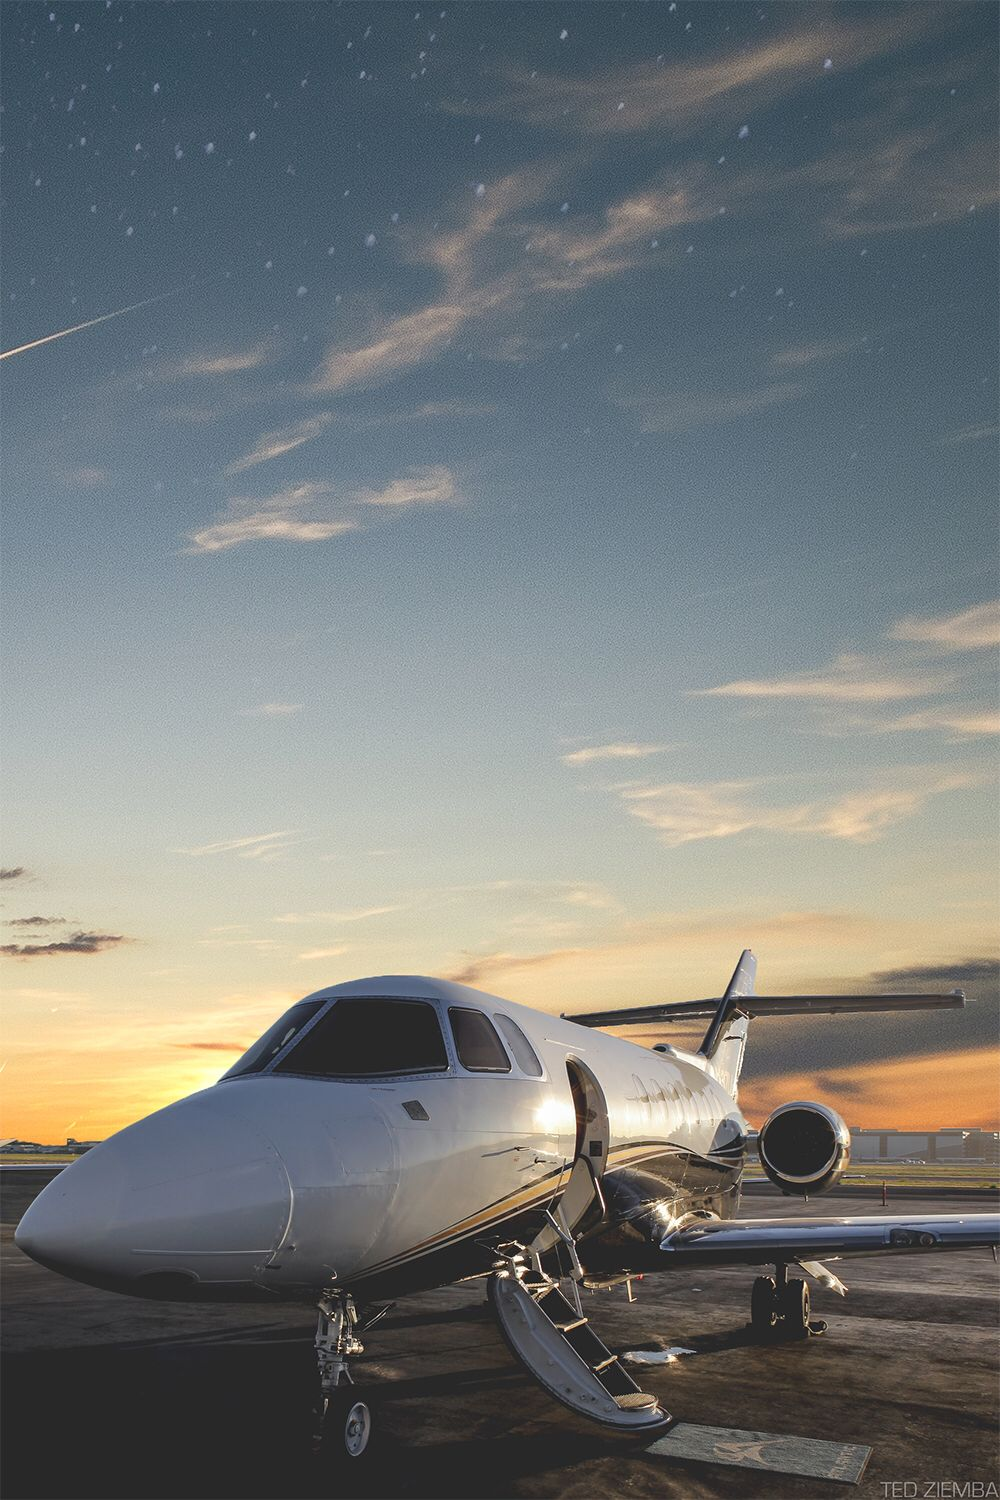 Jet Privato Lussuoso : Affordable private jet the mr style the pup